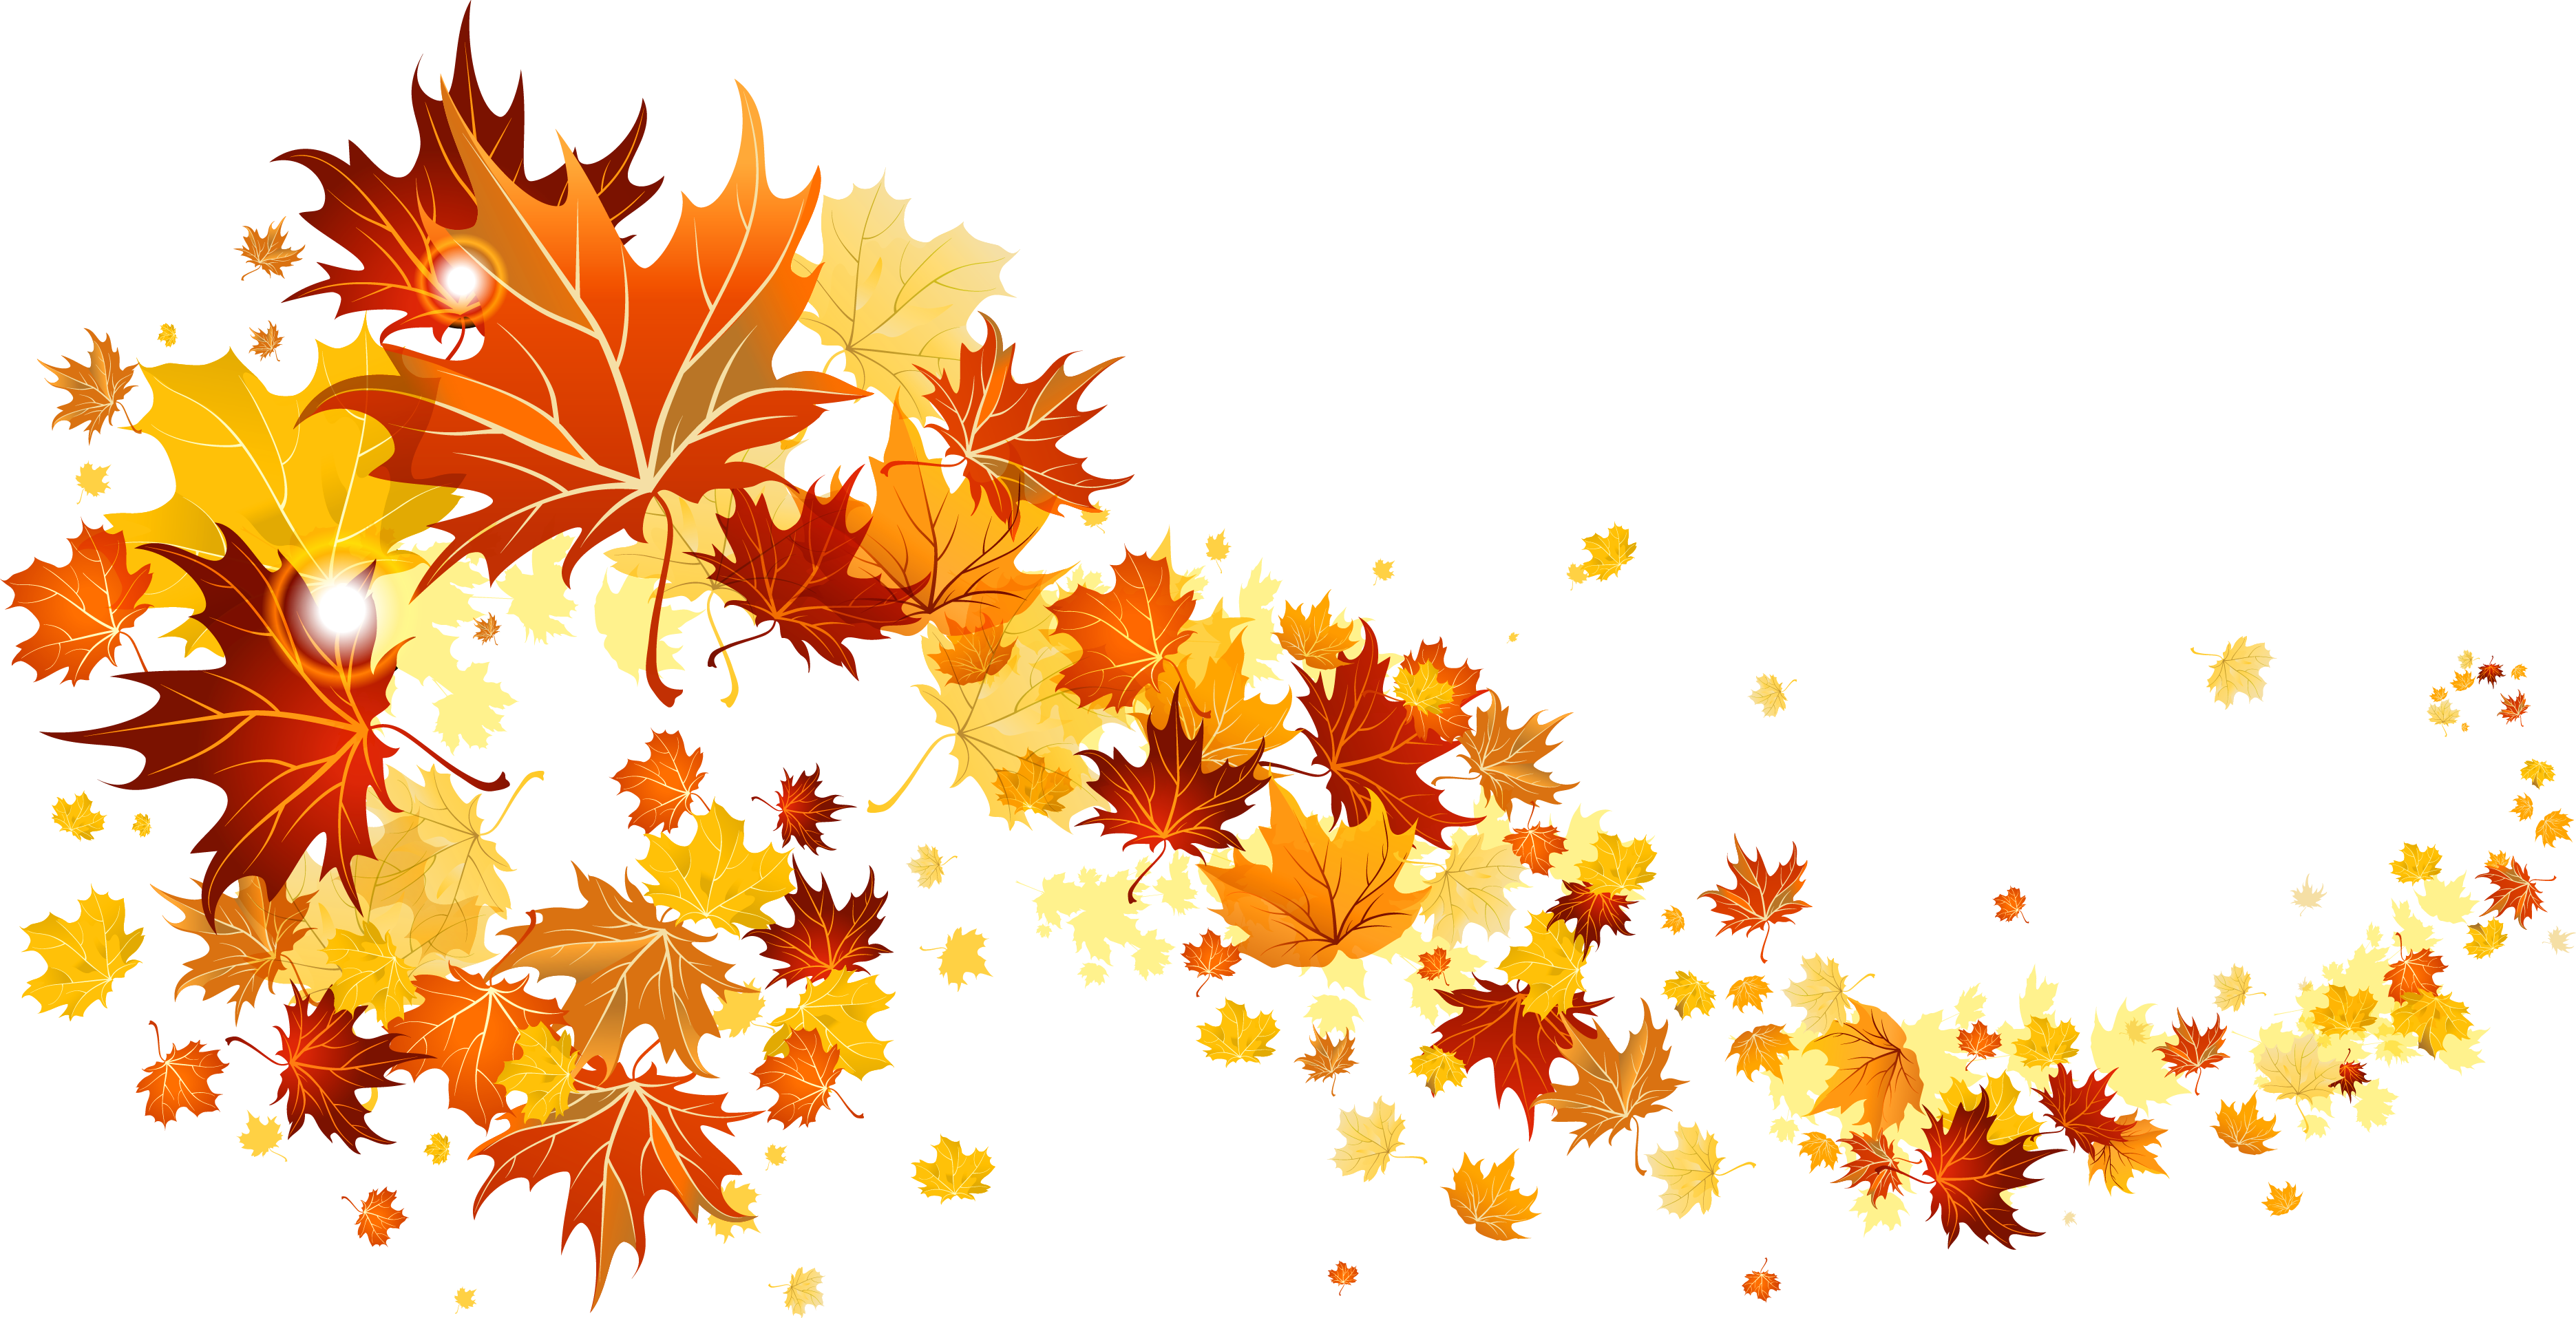 Bing clipart autumn leaves svg freeuse stock Simply add them to your Fall Checklist. Description from ... svg freeuse stock